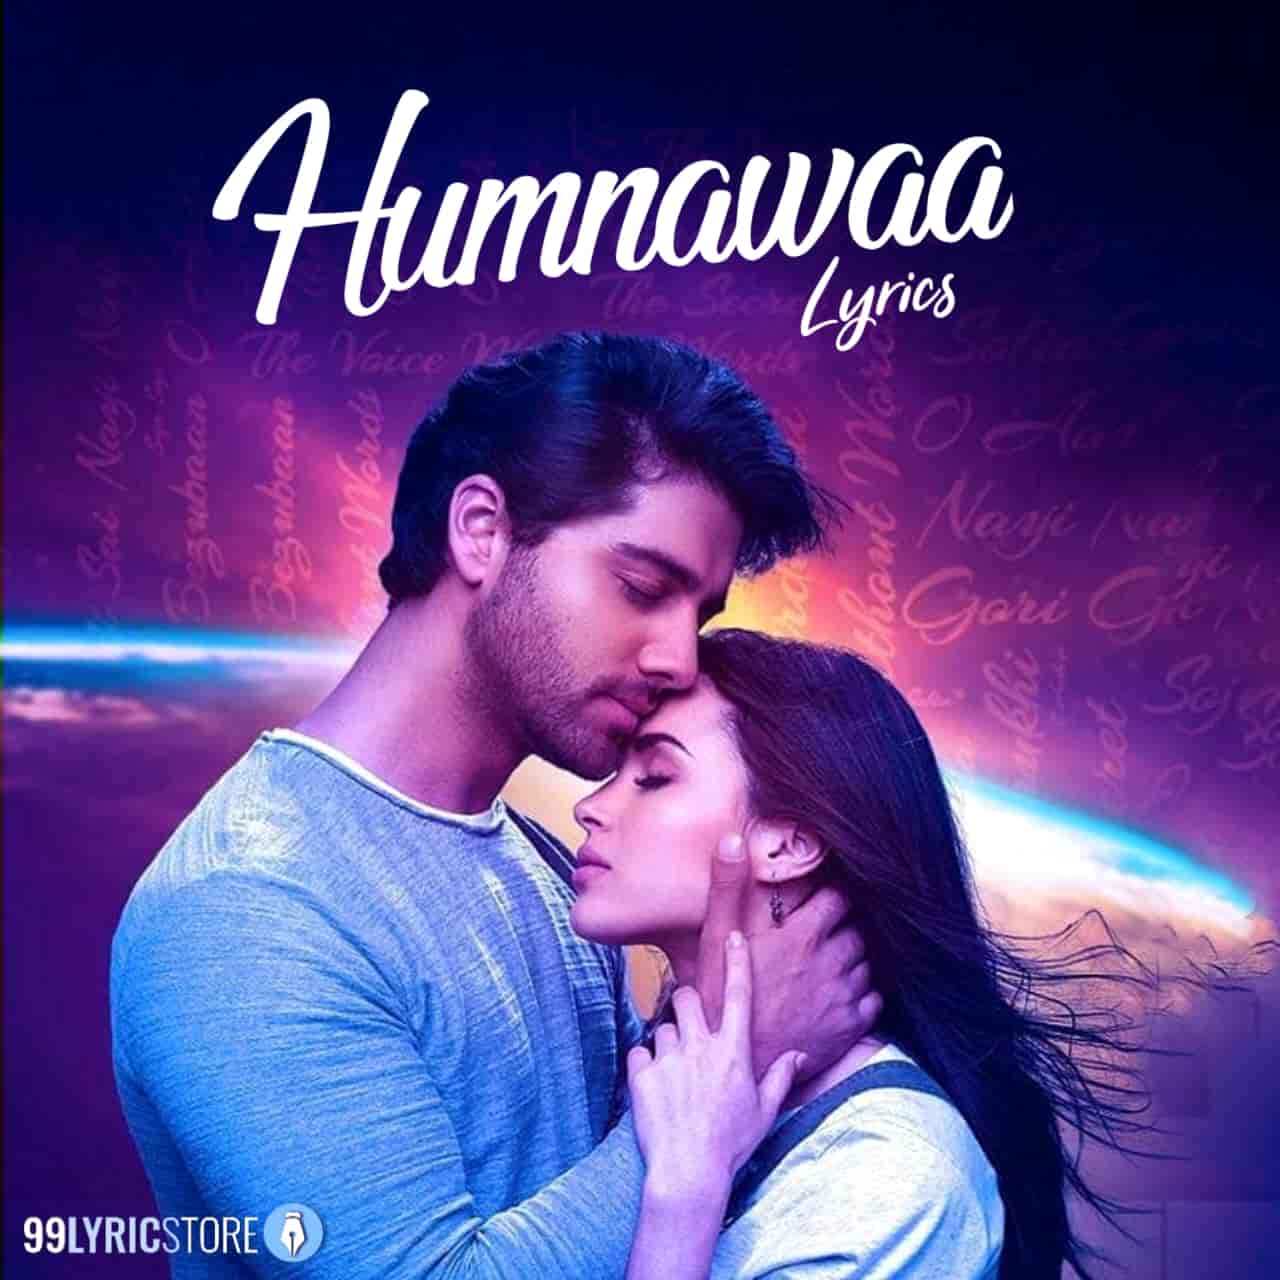 "Humnawaa Lyrics :- Feel the fire of love in this love season by Humnawaa Song from legend A.R. Rahman's music album ""99Songs"" which is very beautifully sung by Armaan Malik, A.R Rahman and Shashaa Tirupati. Music of this song given by great musician A.R. Rahman while this beautiful track Humnawaa lyrics has penned by Dilshaad Shabbir Shaikh. This song is presented by Sony Music India label."